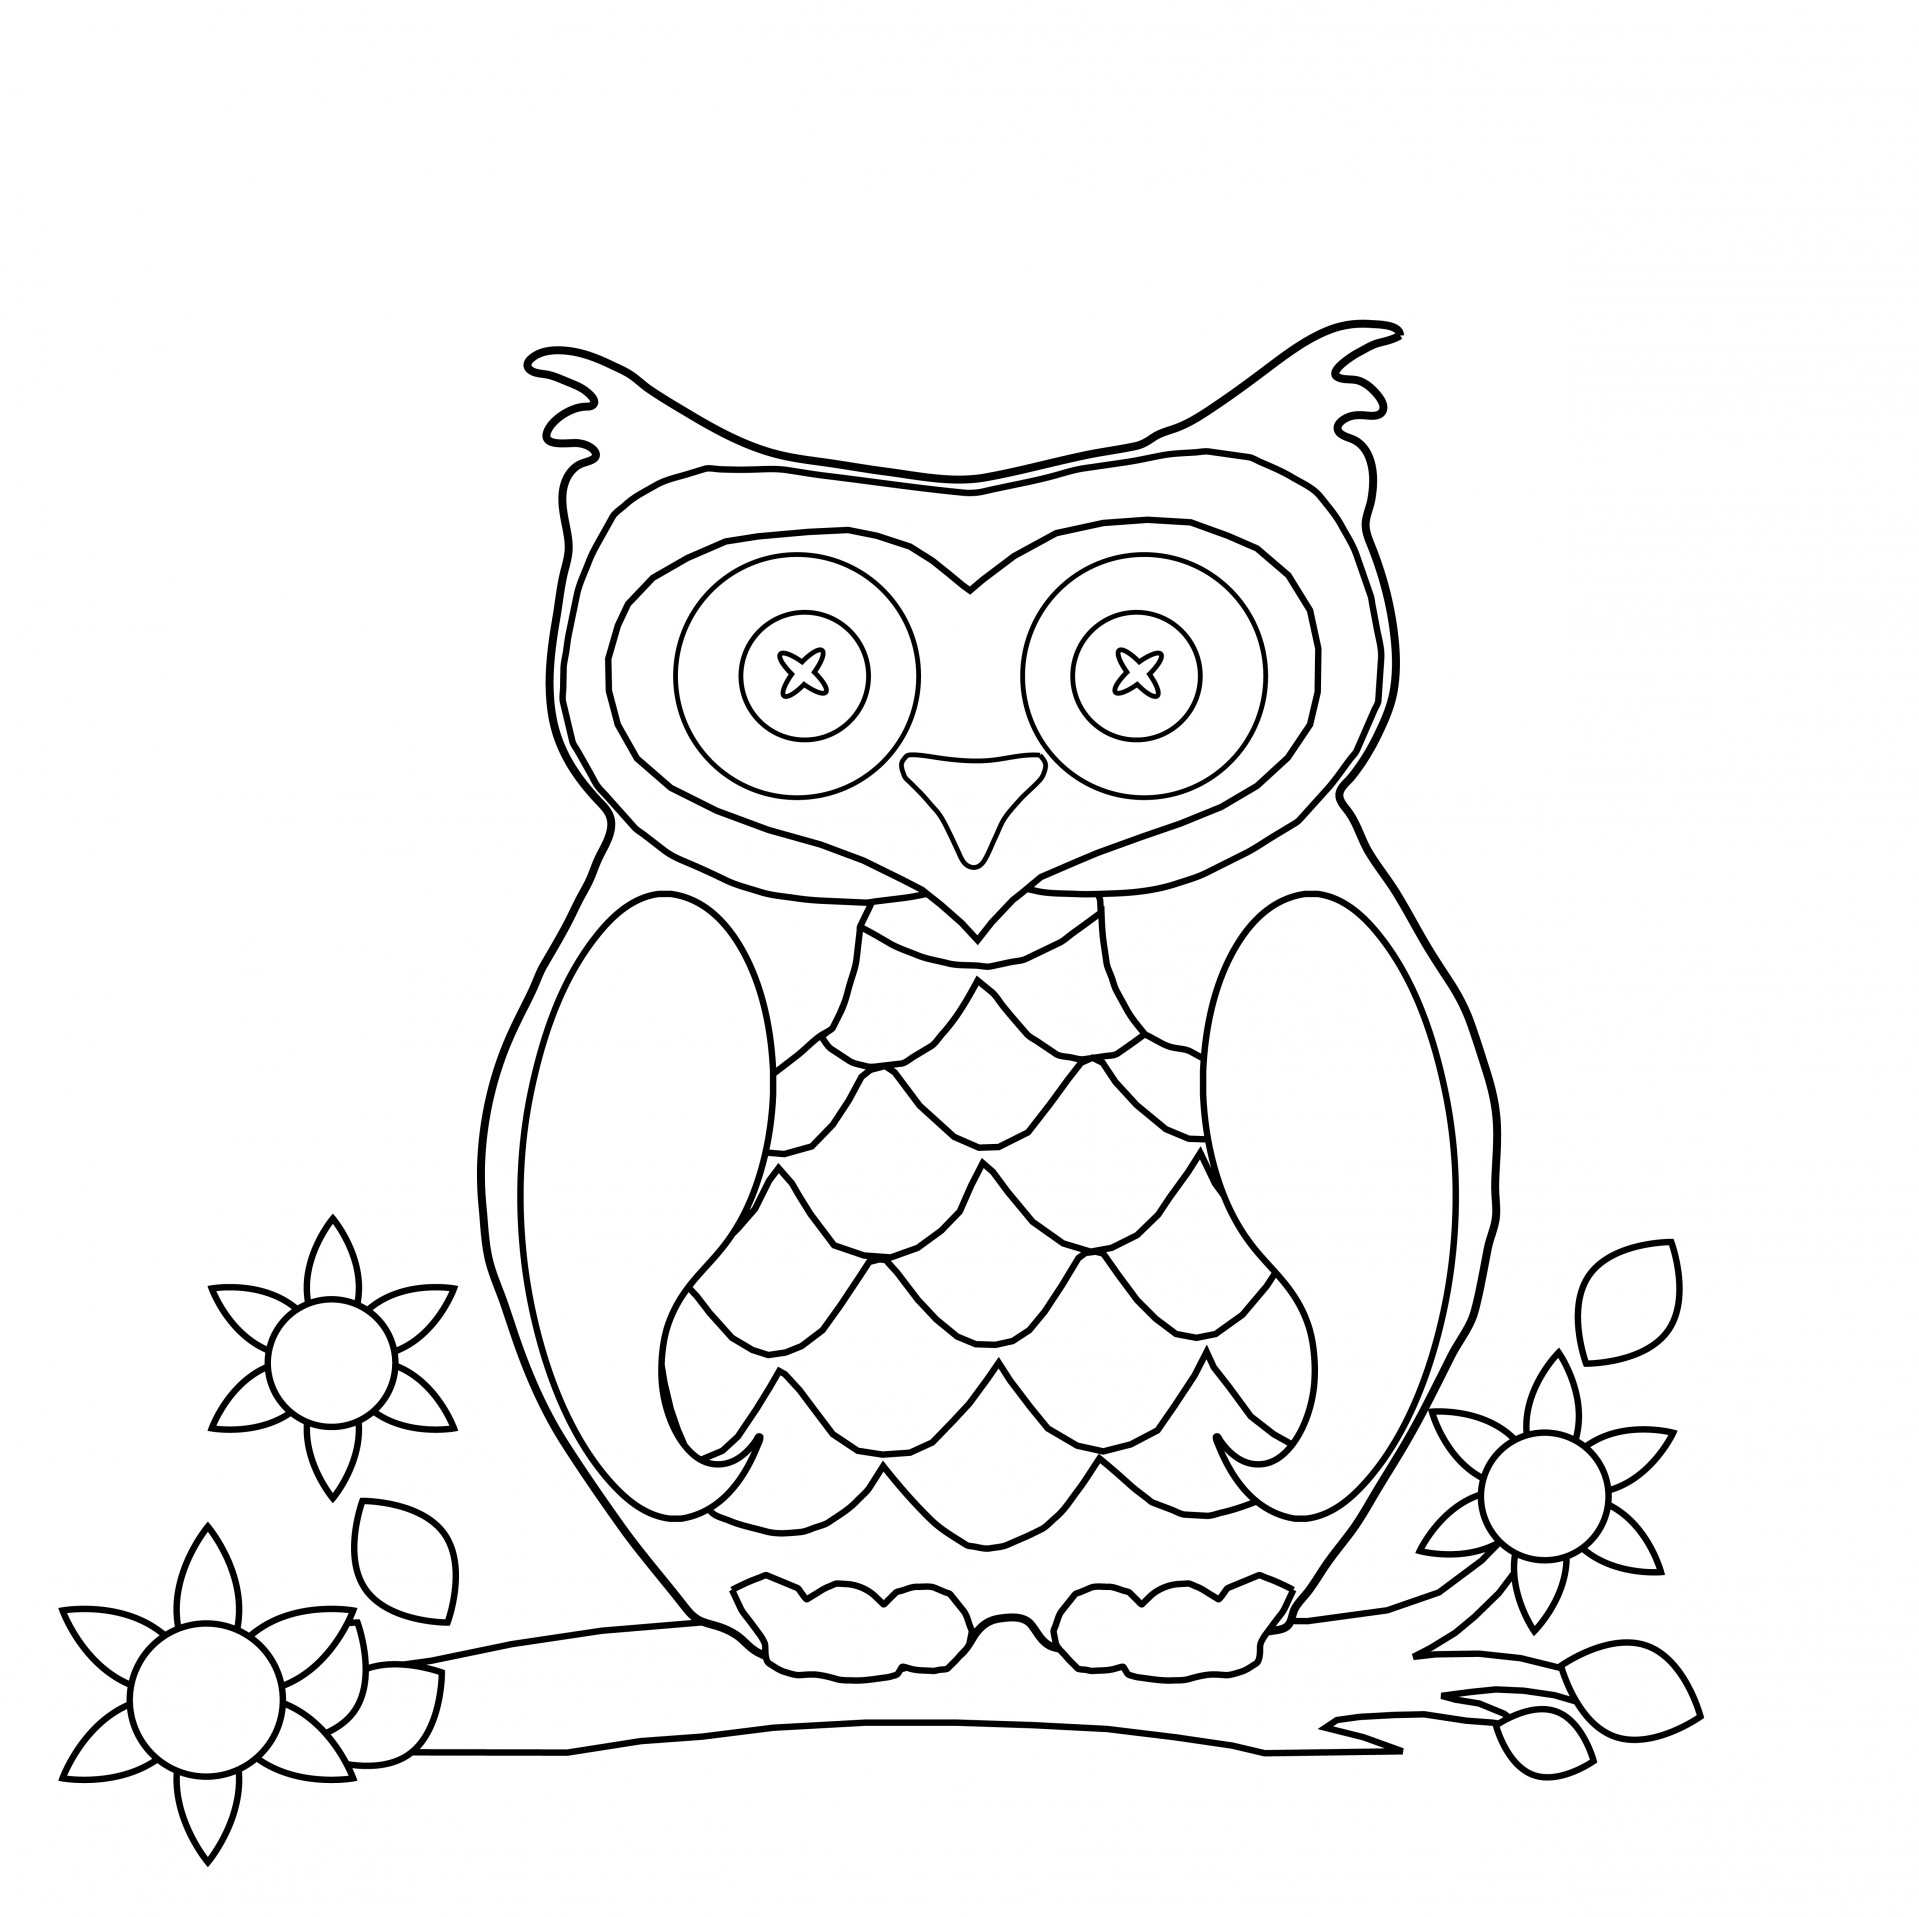 coloring printable free bunny coloring pages best coloring pages for kids coloring printable free